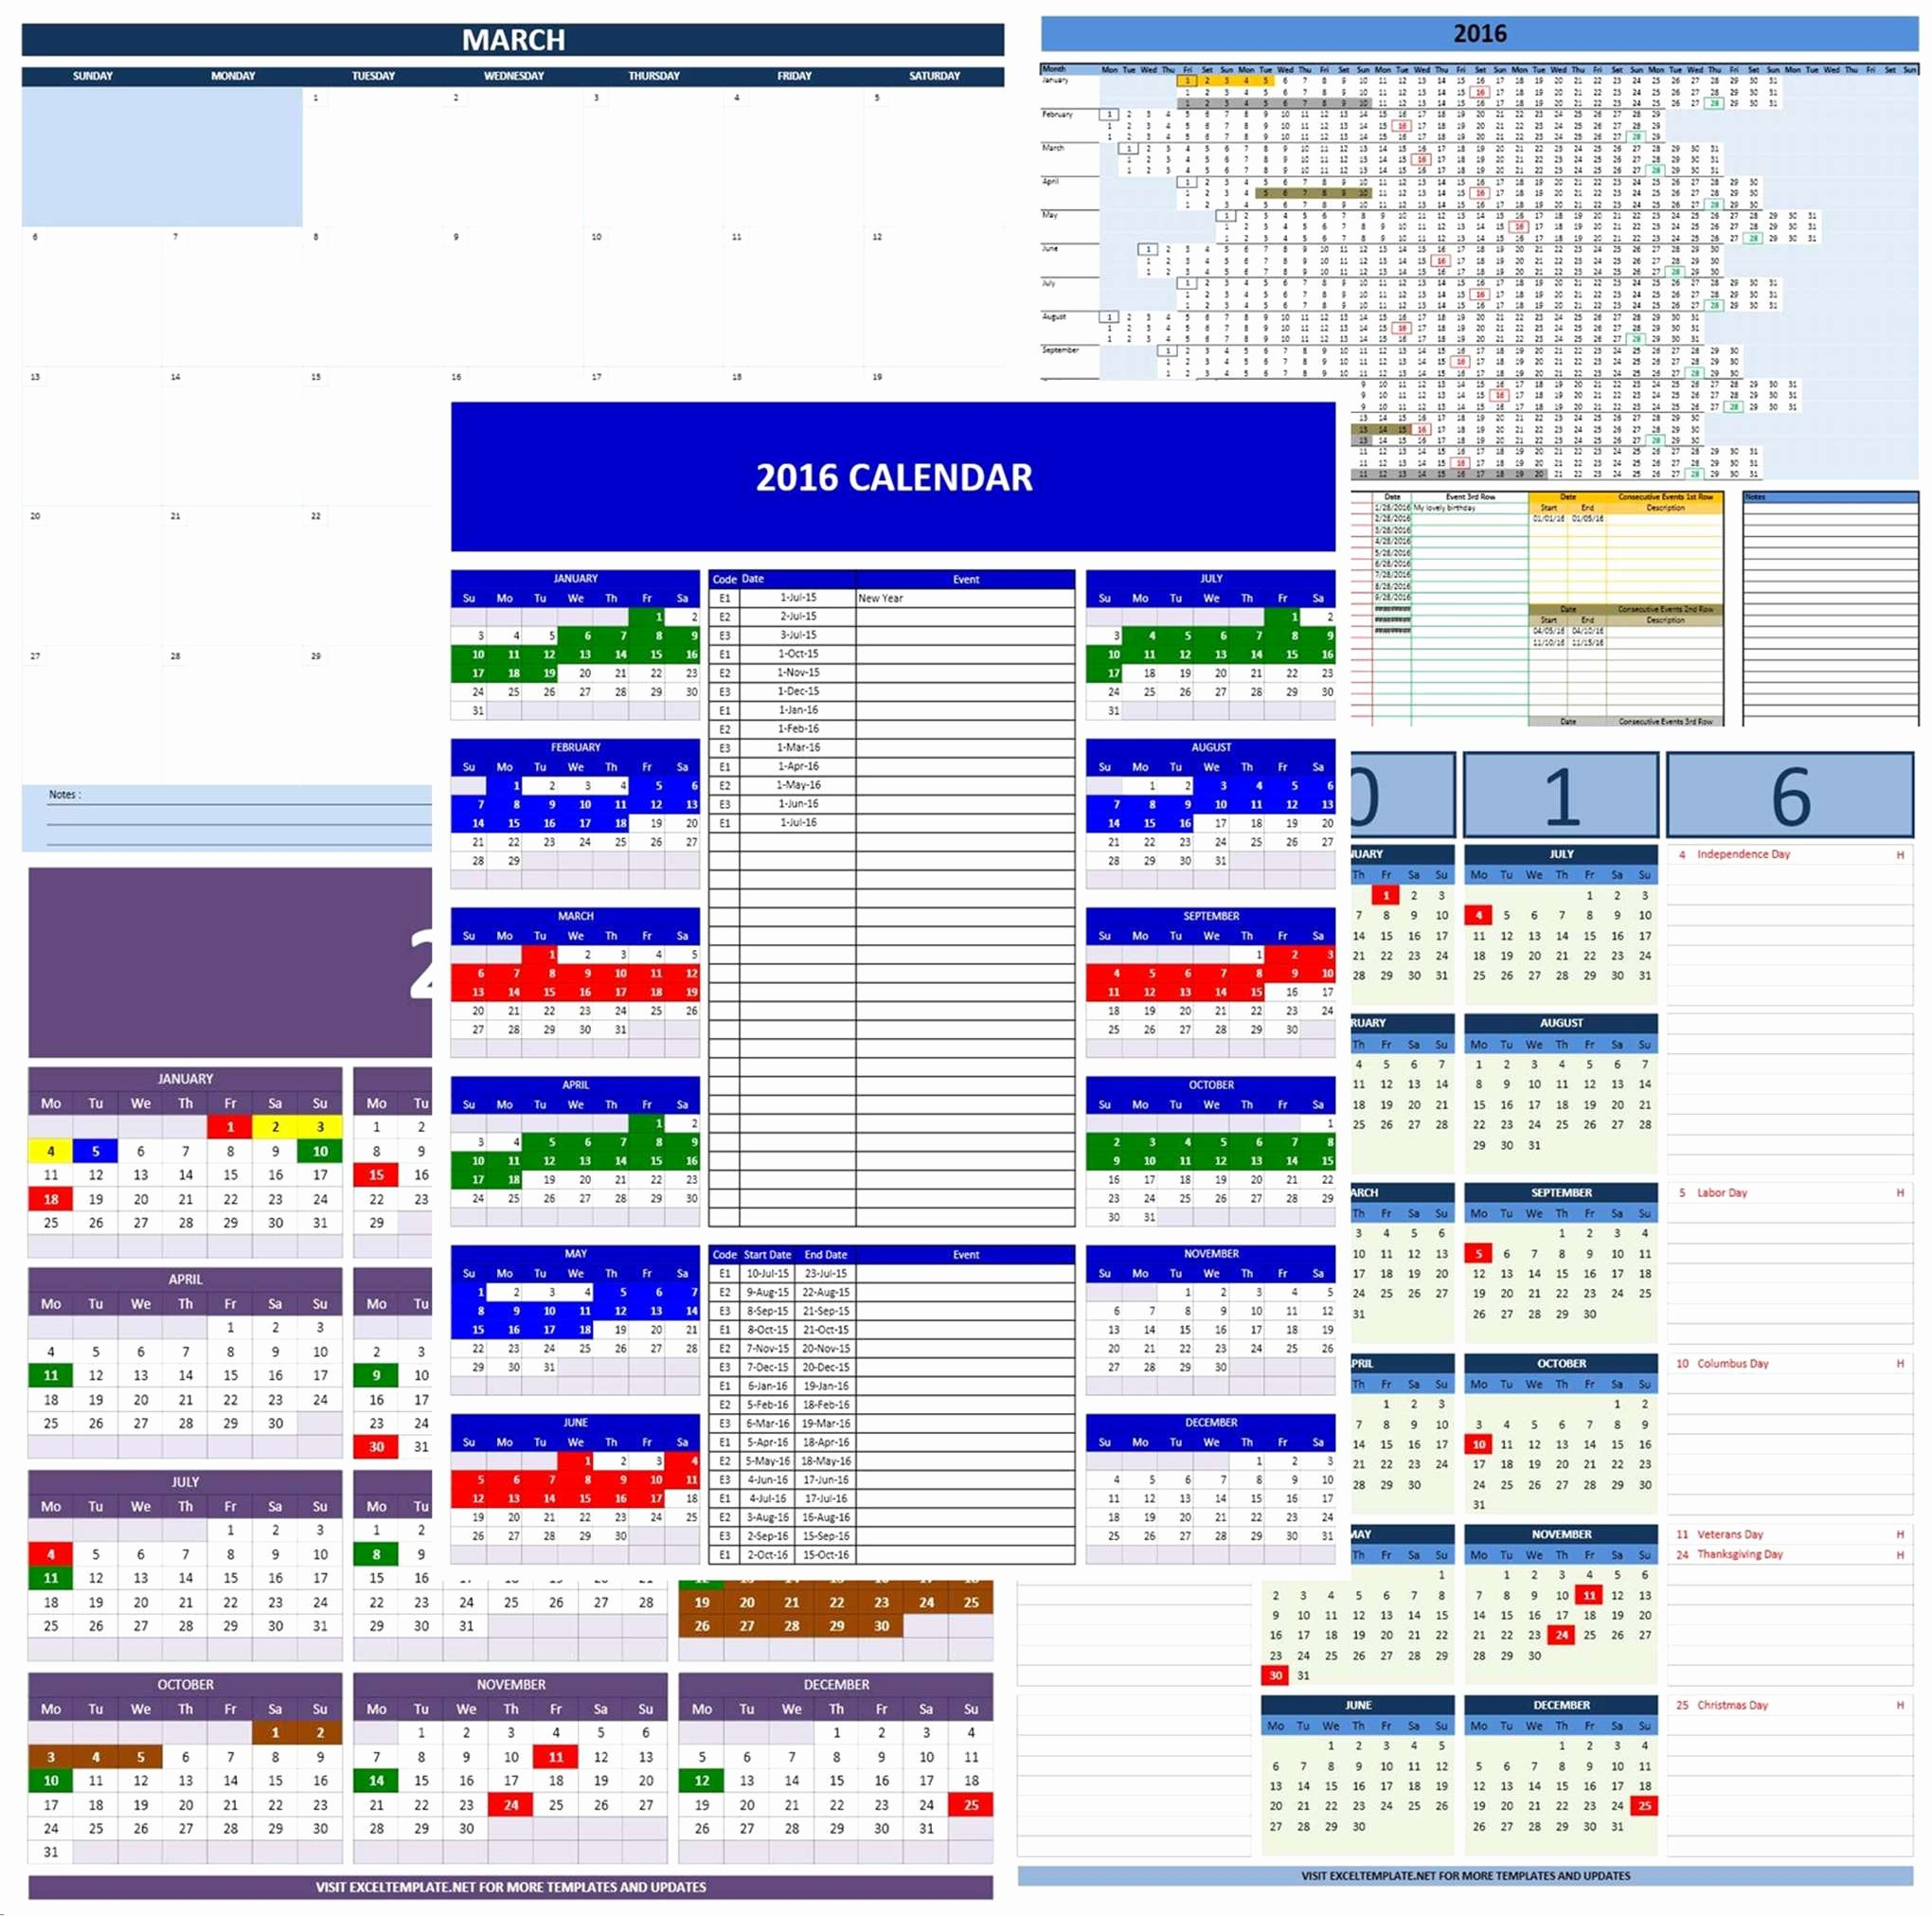 Excel Calendar Schedule Template Inspirational 2016 Calendars